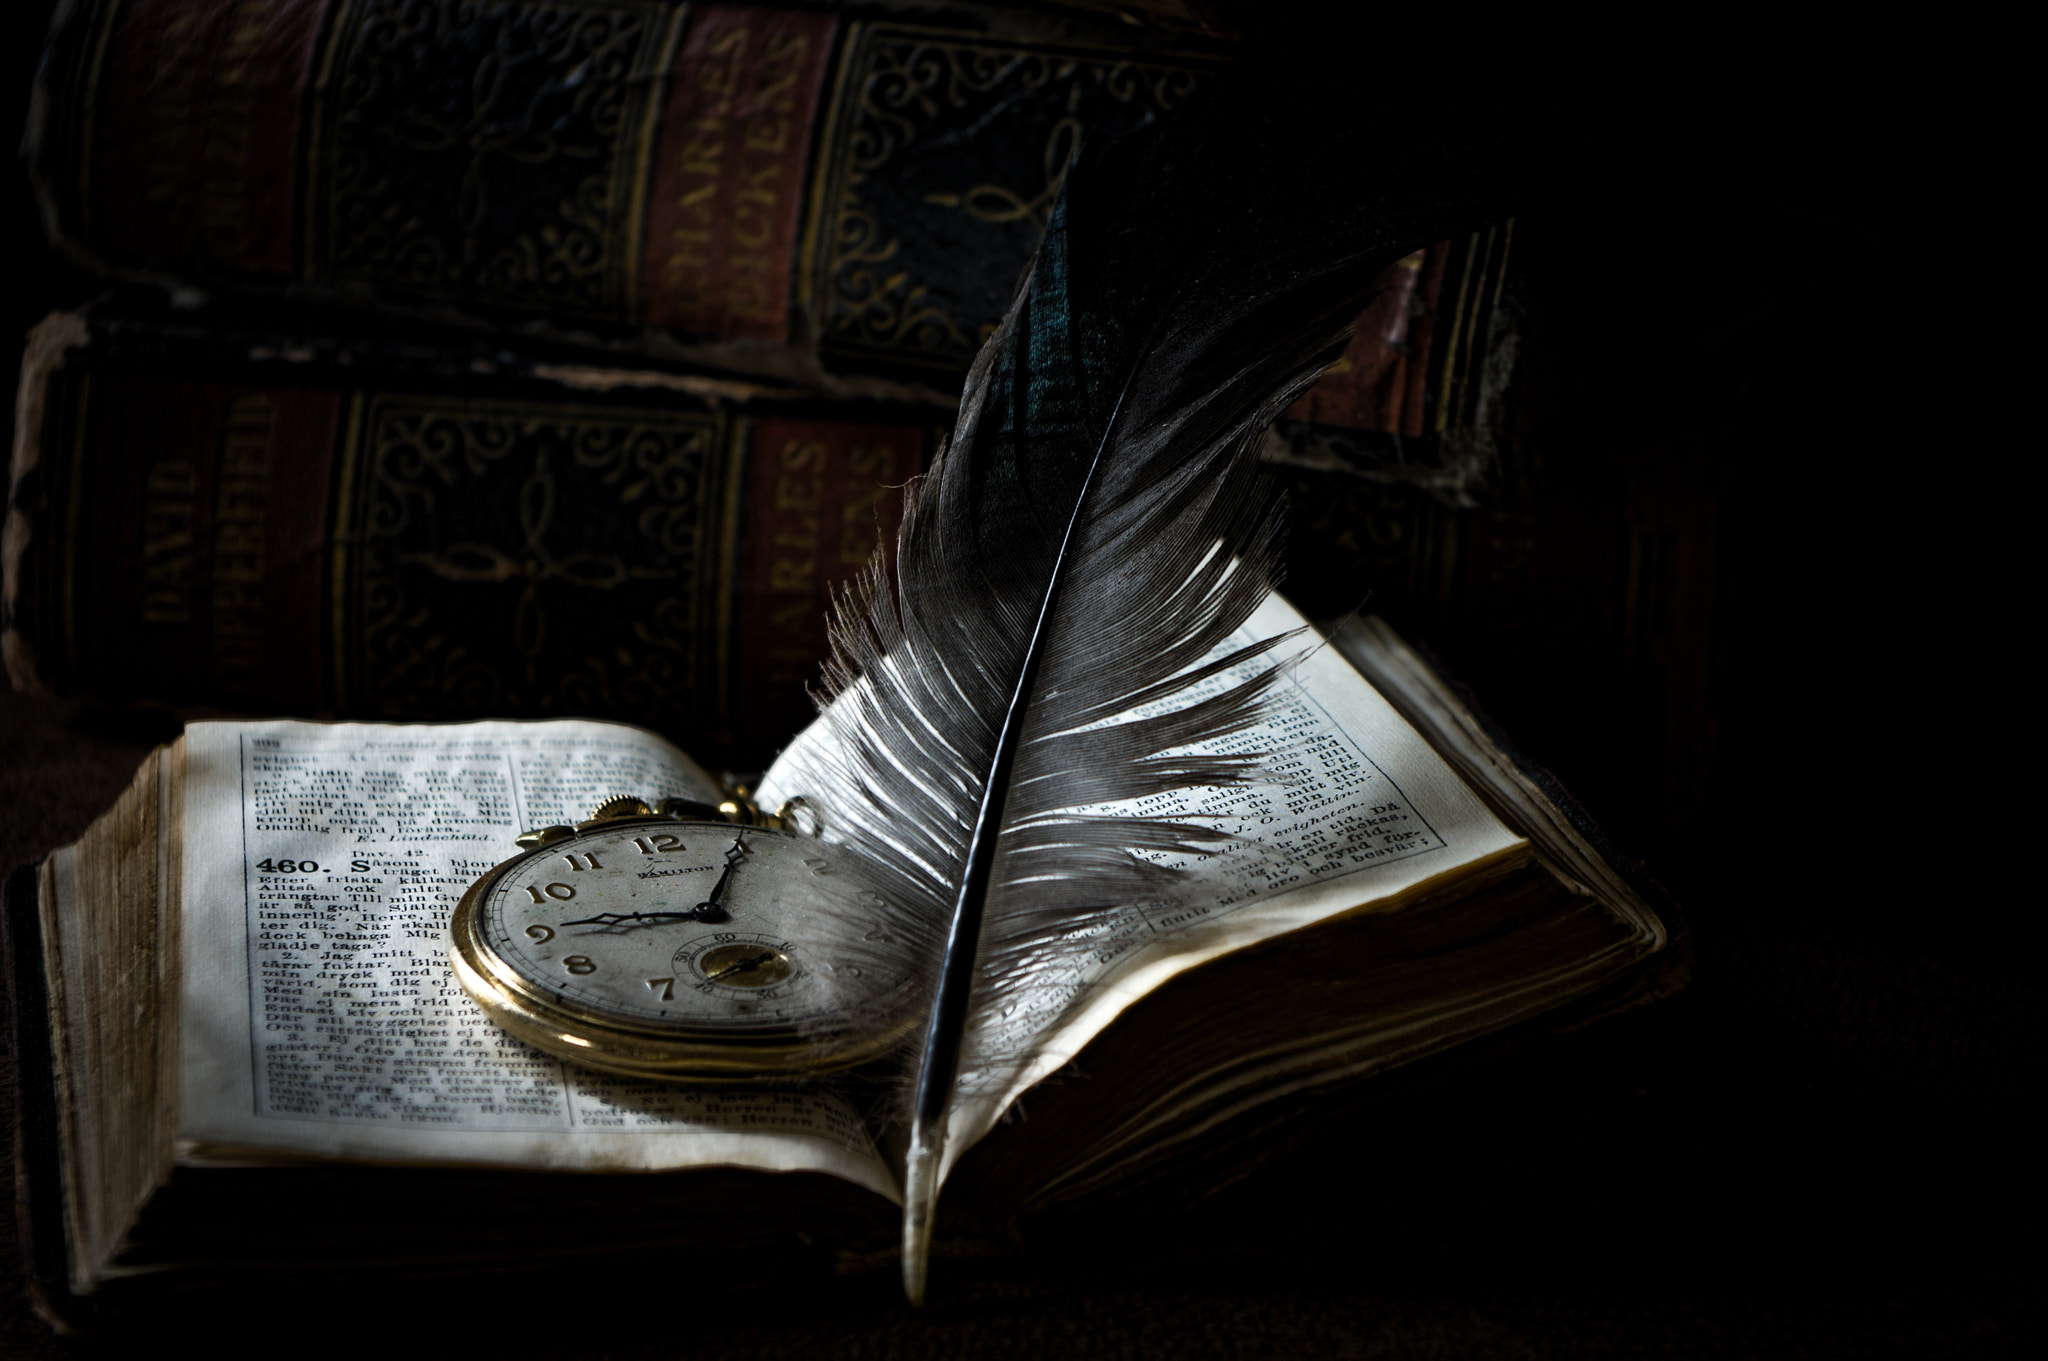 Photograph An Evening with Dickens by Mia Lisa Anderson on 500px